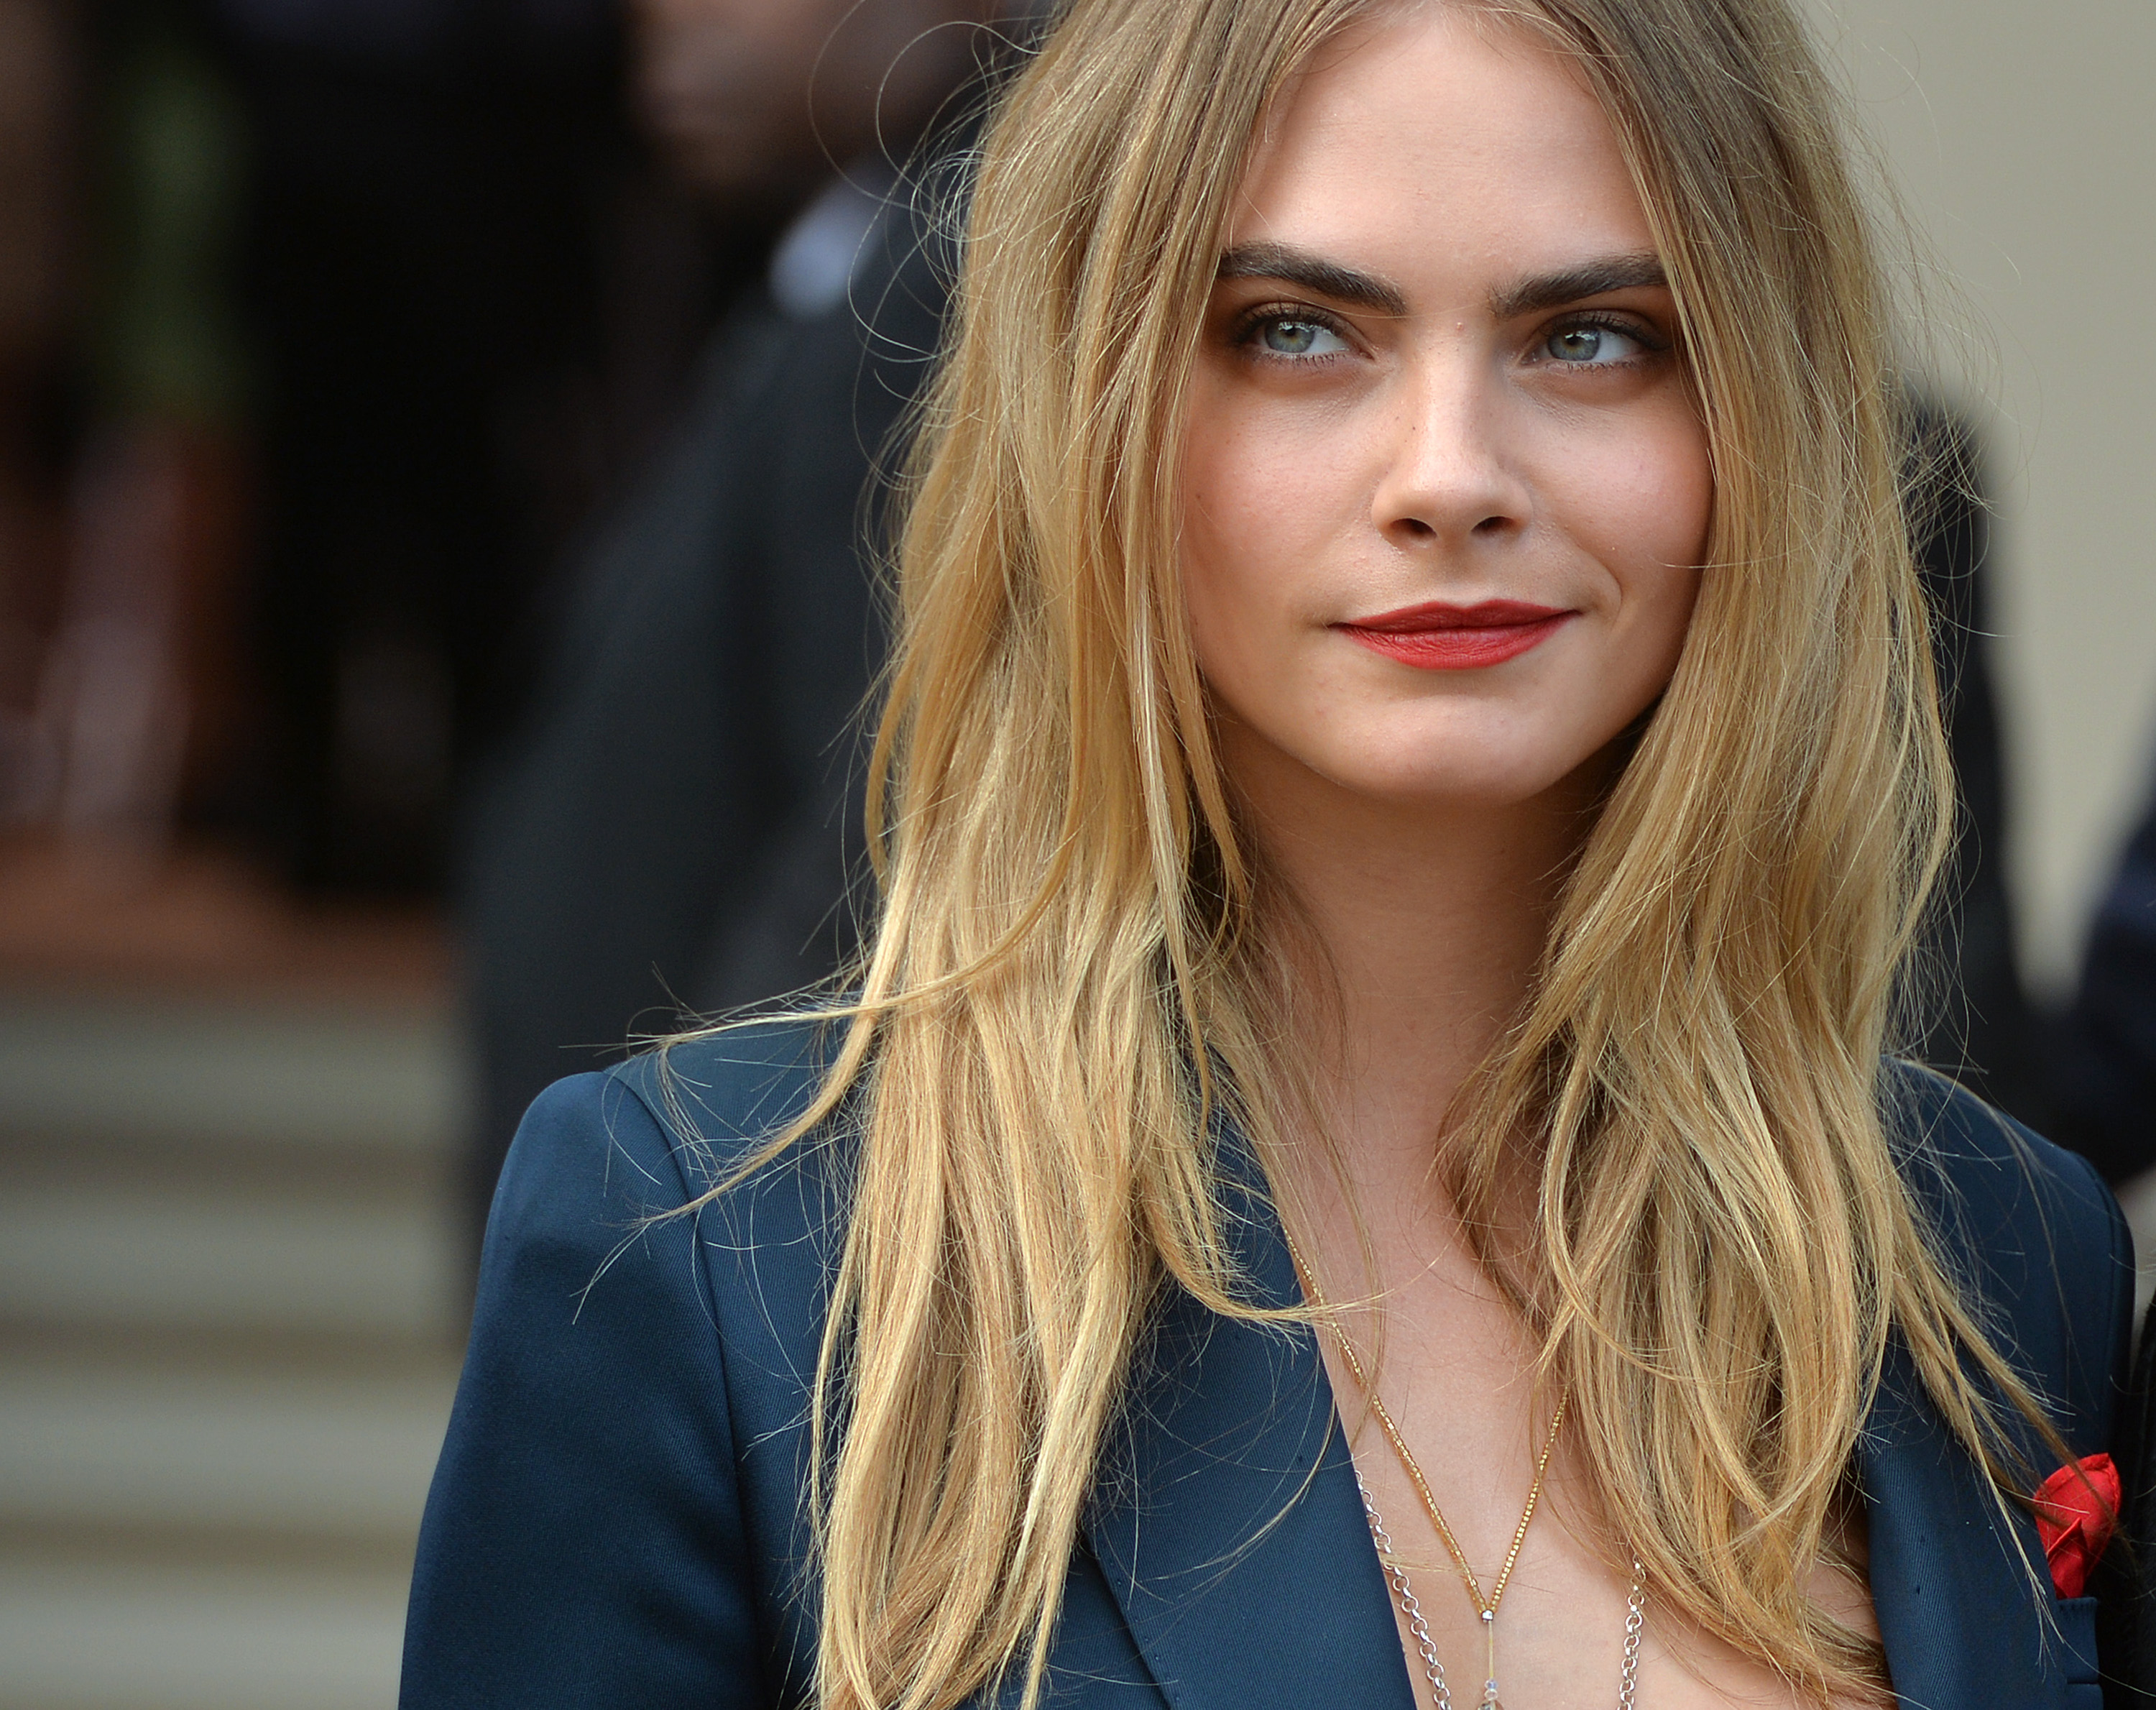 Newly single Cara Delevingne marks her freedom with new snake tattoo